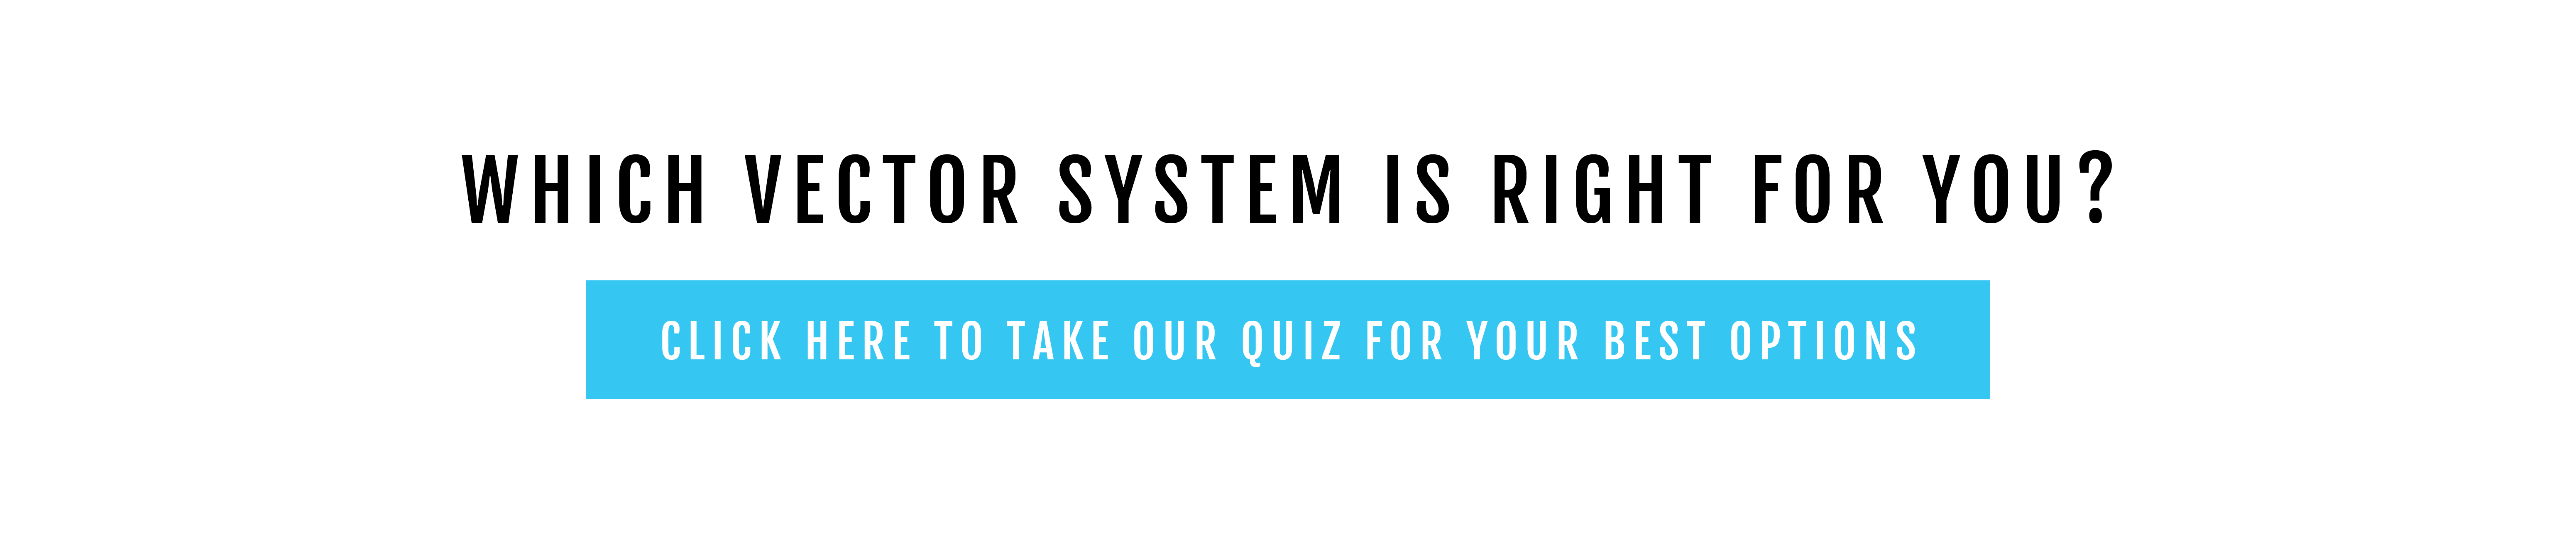 which kayezen system is right for you?